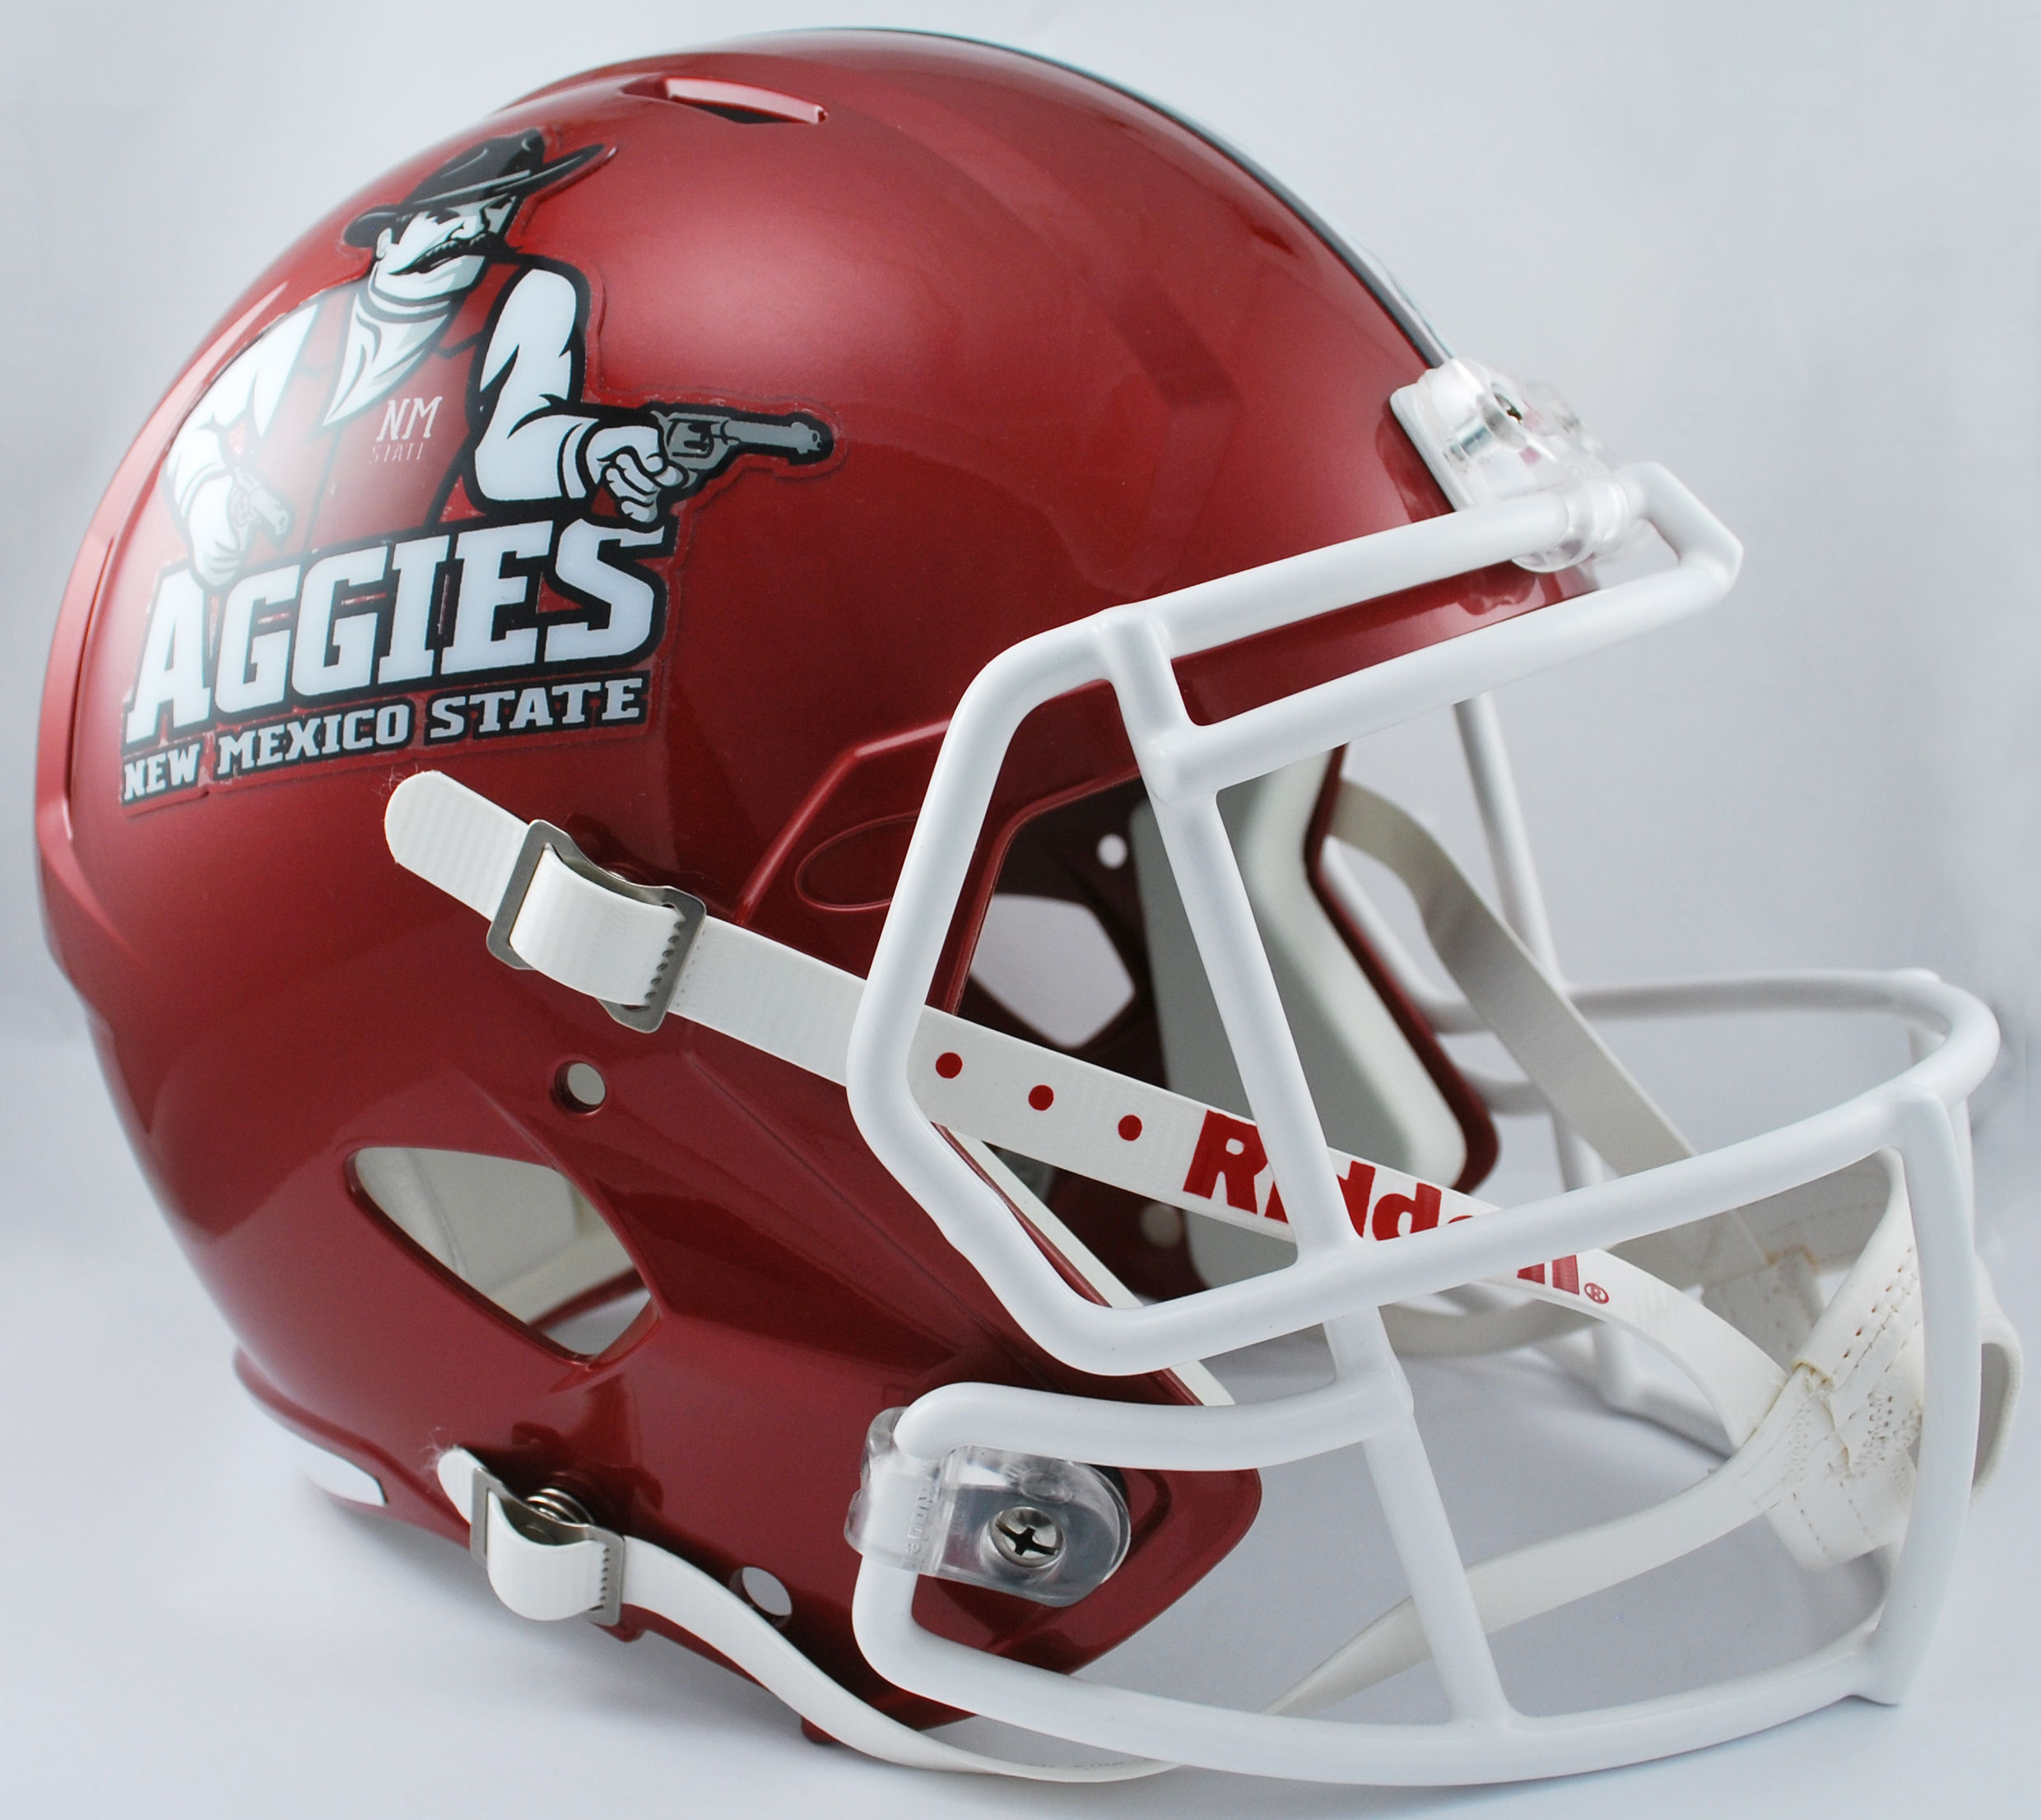 New Mexico State Aggies Speed Replica Football Helmet